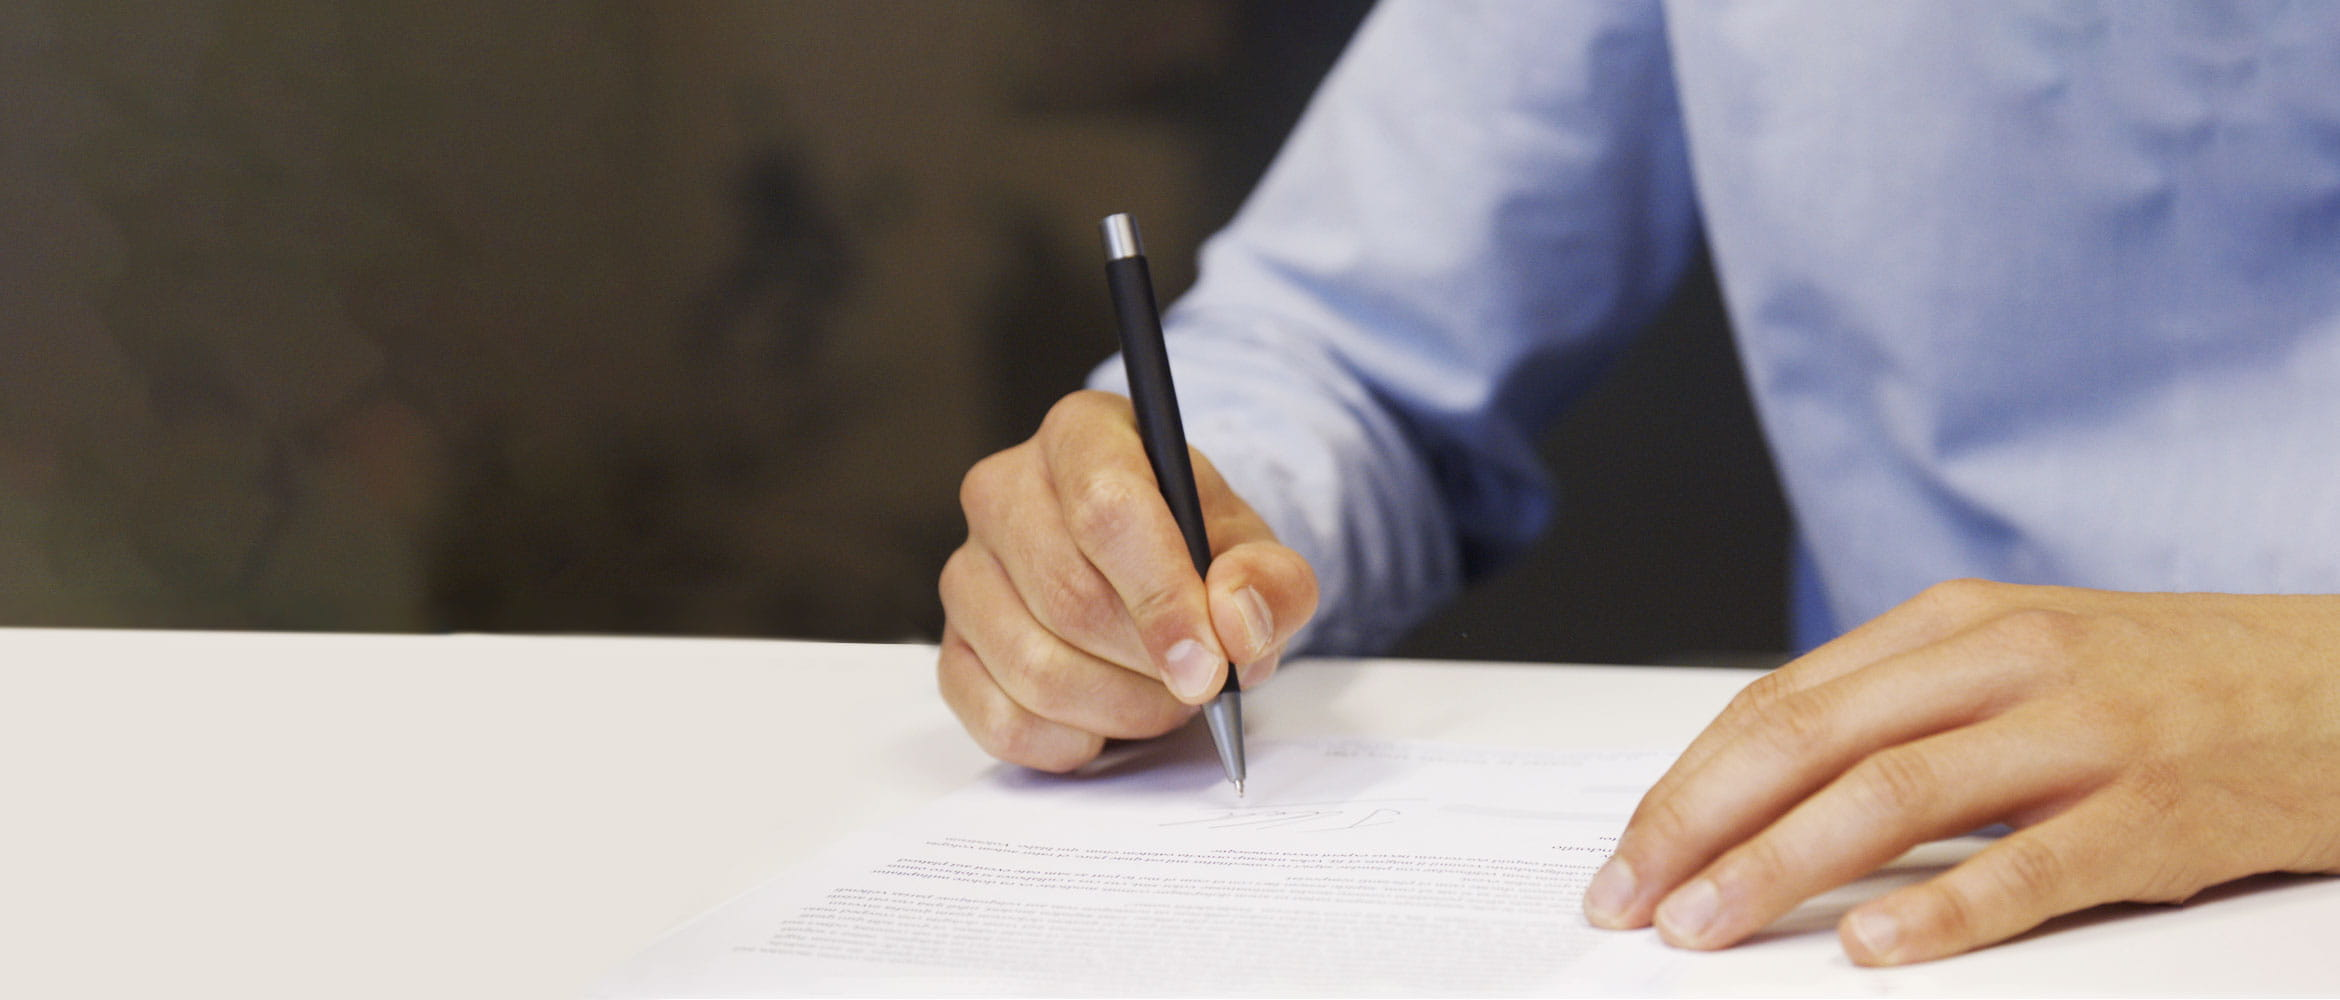 Man wearing blue shirt signing document